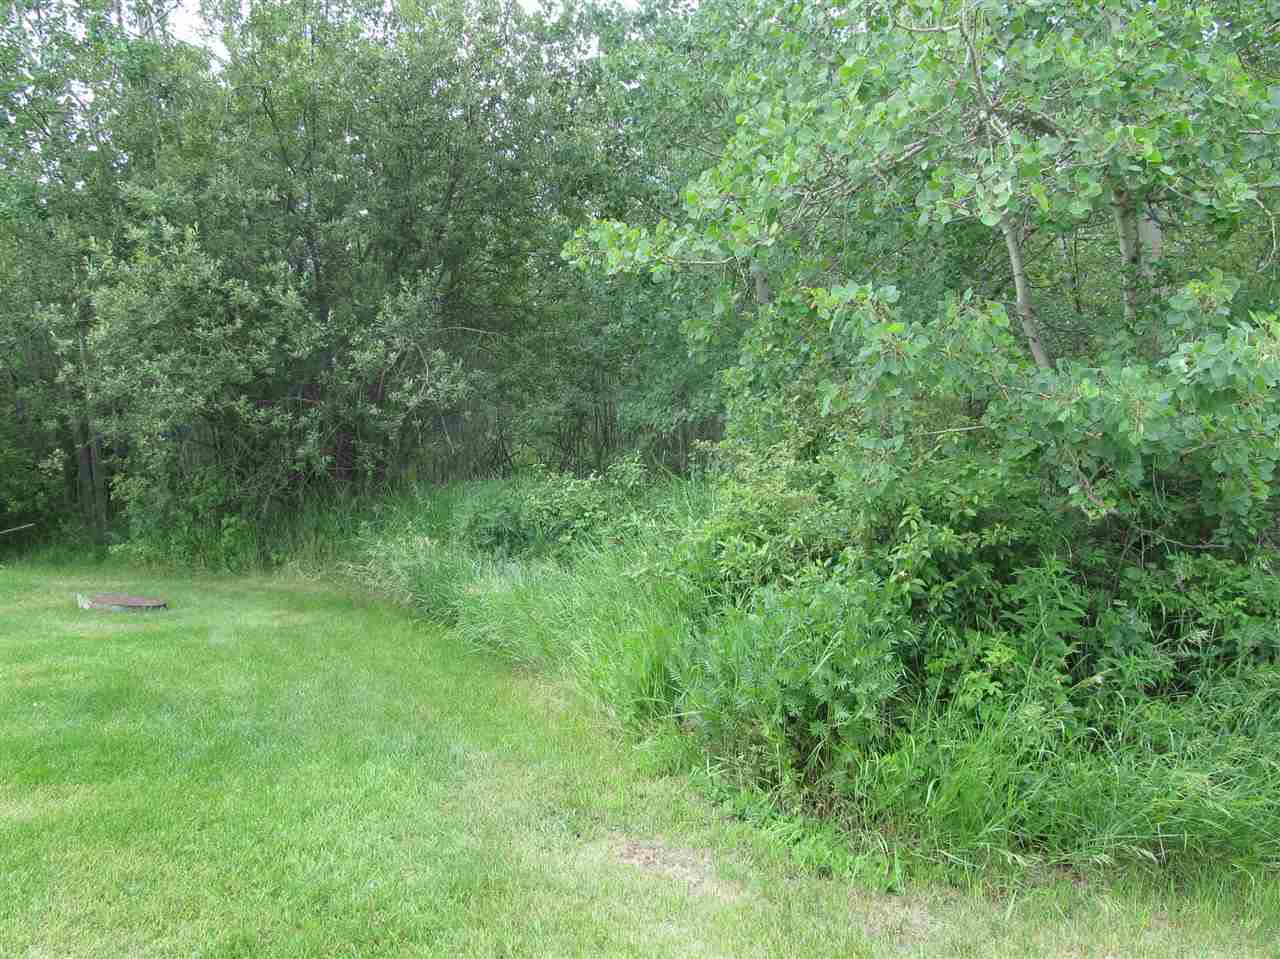 Main Photo: 451 Lakeview Drive: Rural Lac Ste. Anne County Rural Land/Vacant Lot for sale : MLS(r) # E4046294